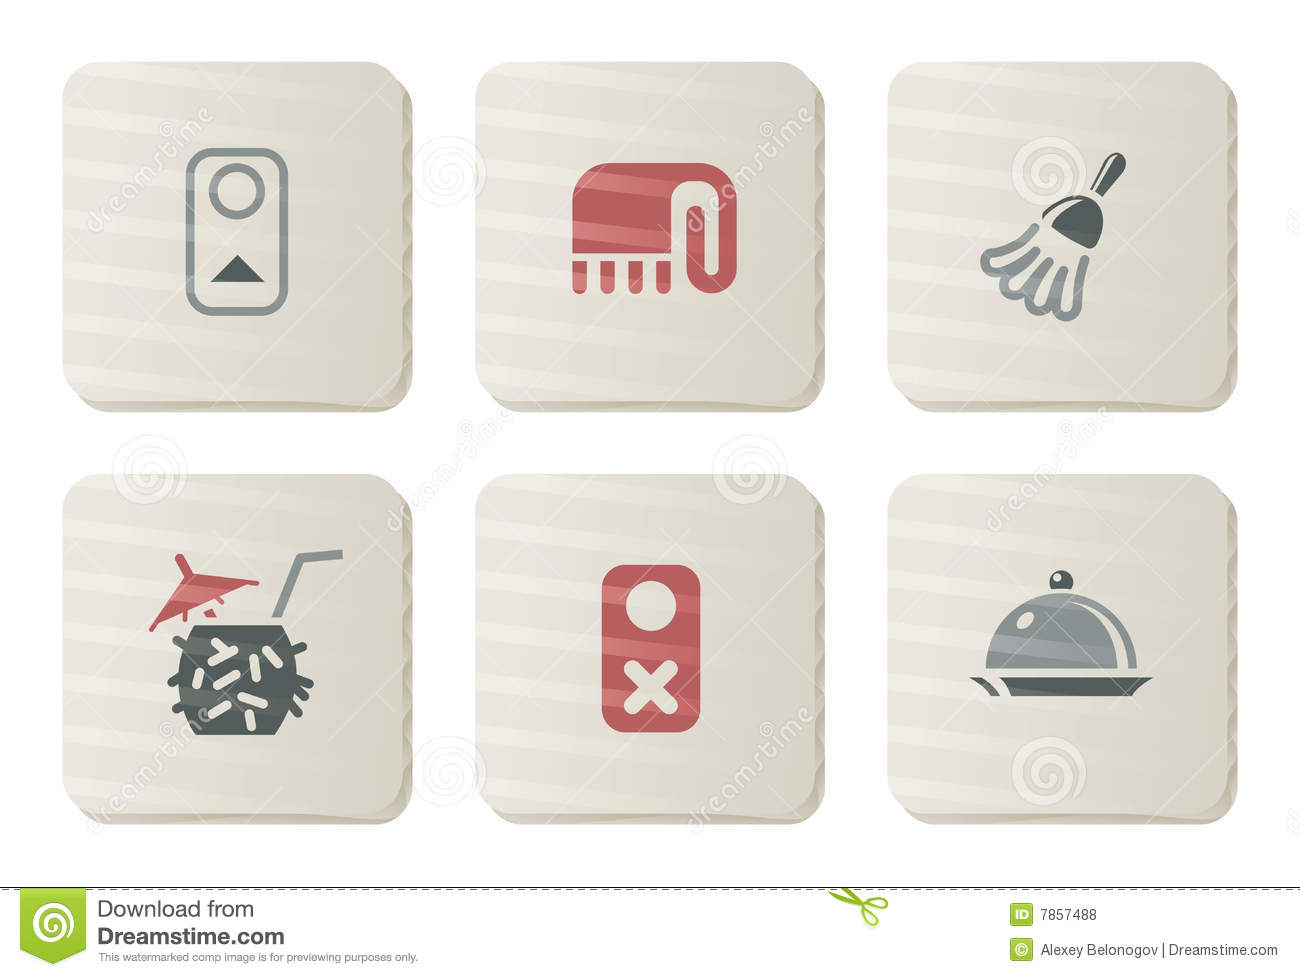 Room service icons | Cardboard series